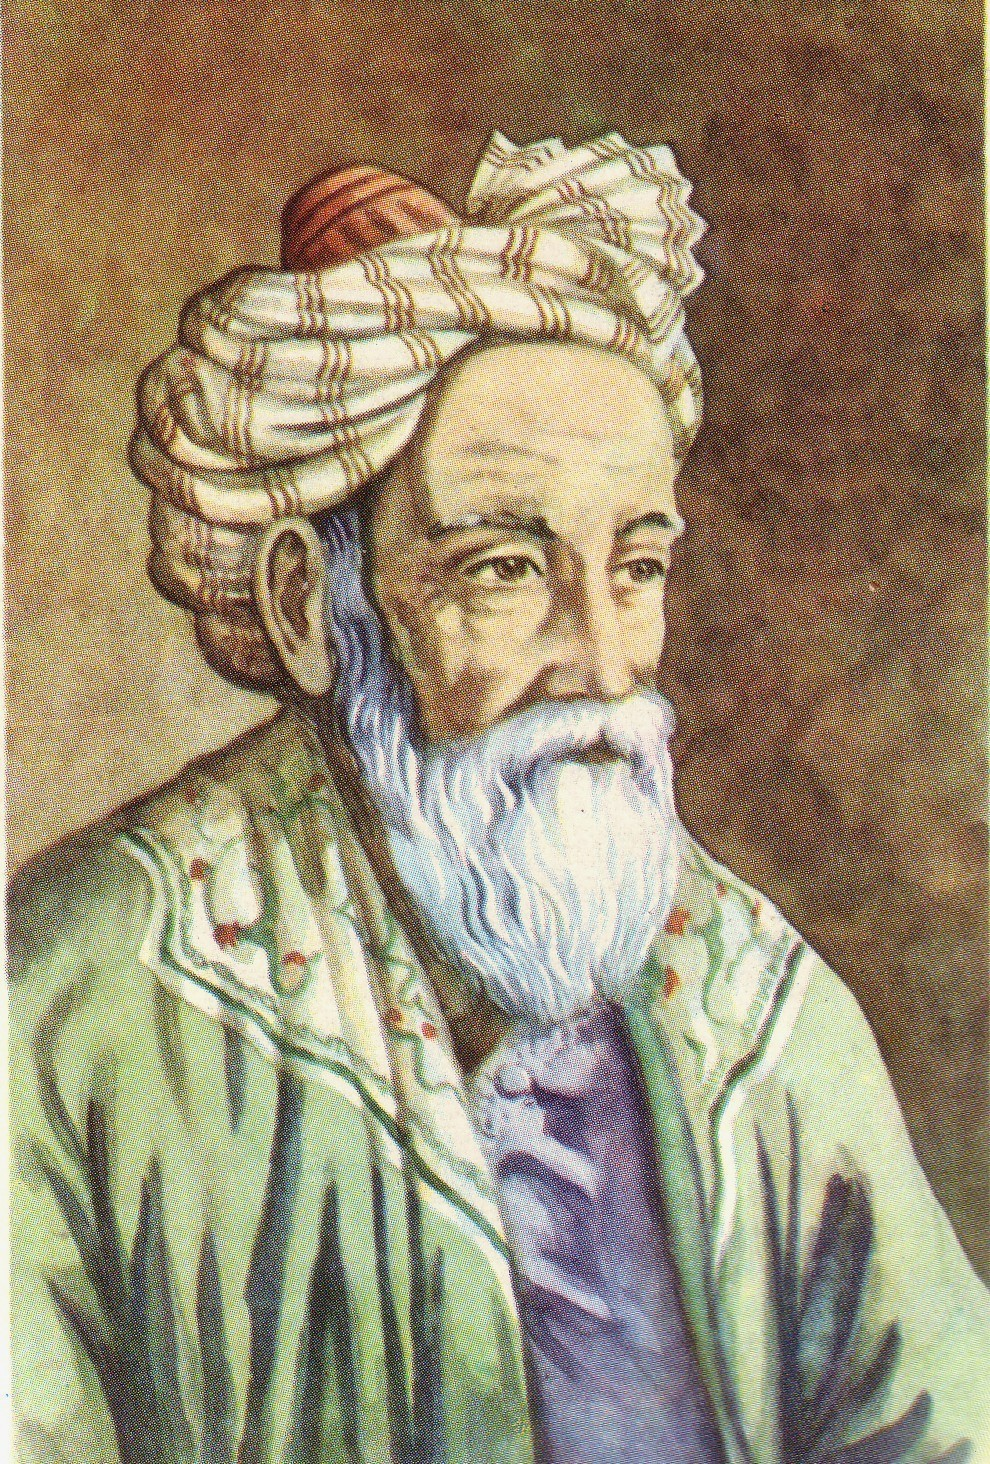 http://upload.wikimedia.org/wikipedia/commons/d/da/Omar_Khayyam2.JPG